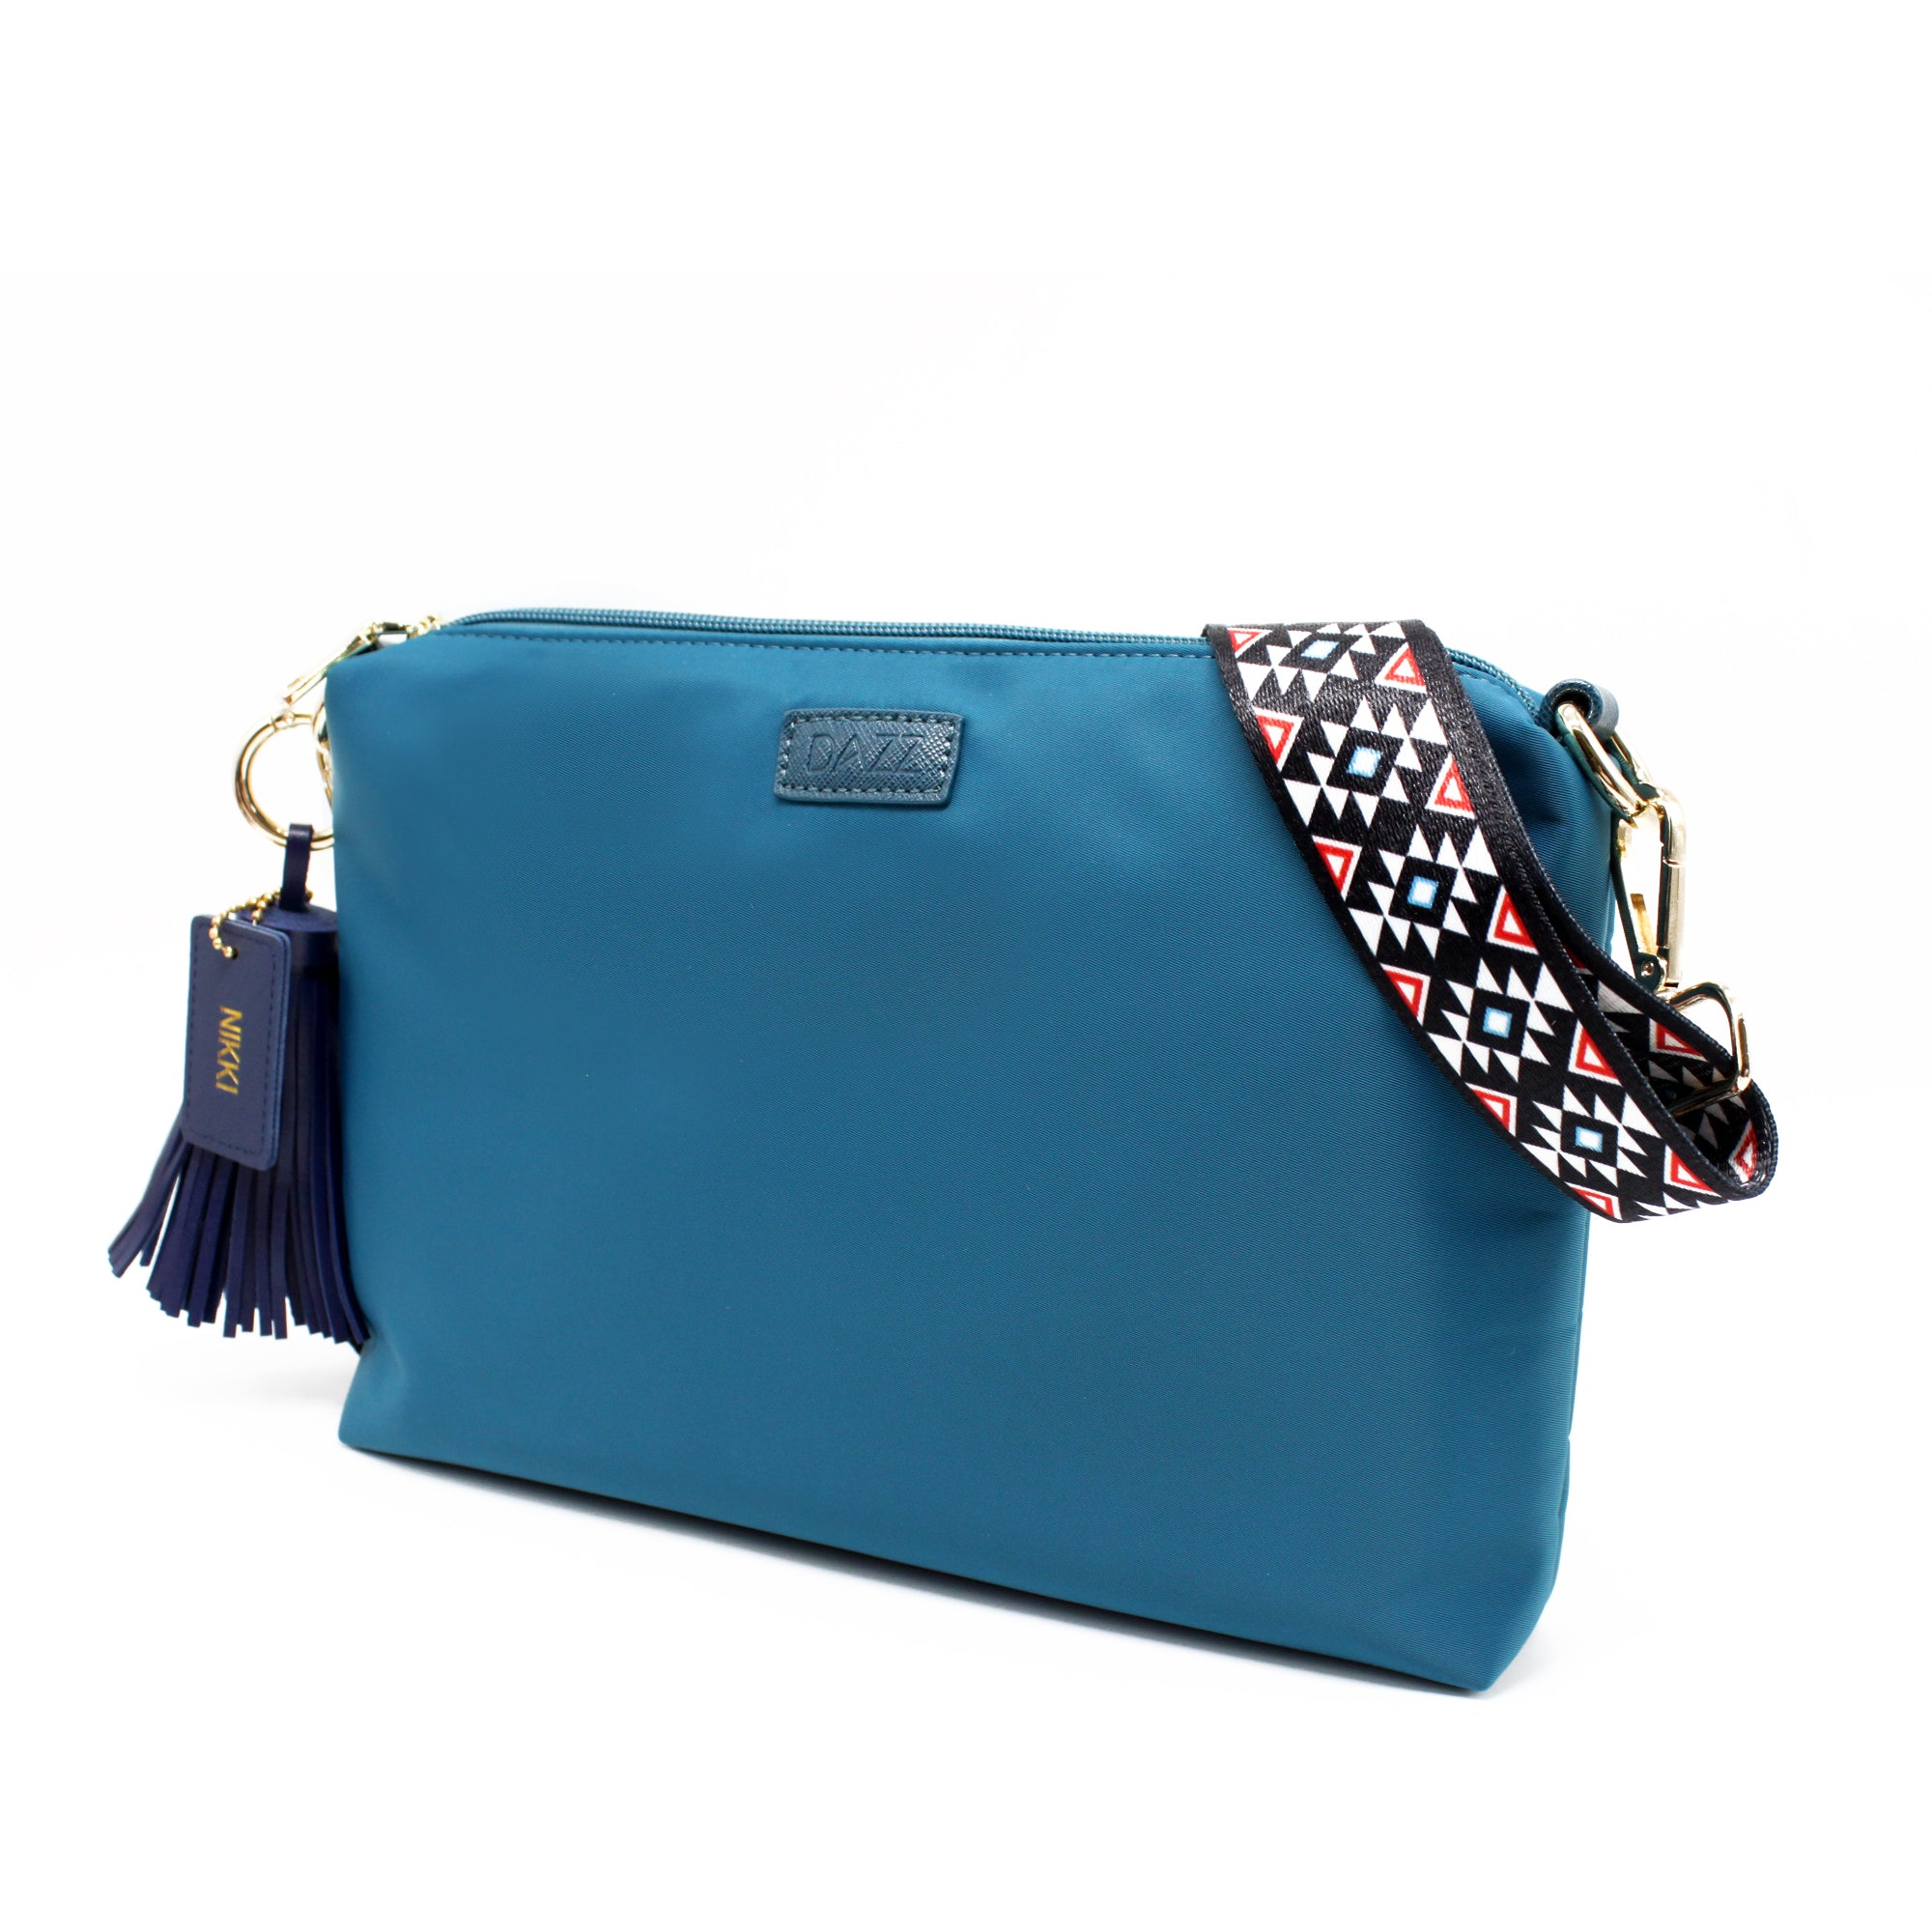 On the Go Sling Bag - Electric Teal